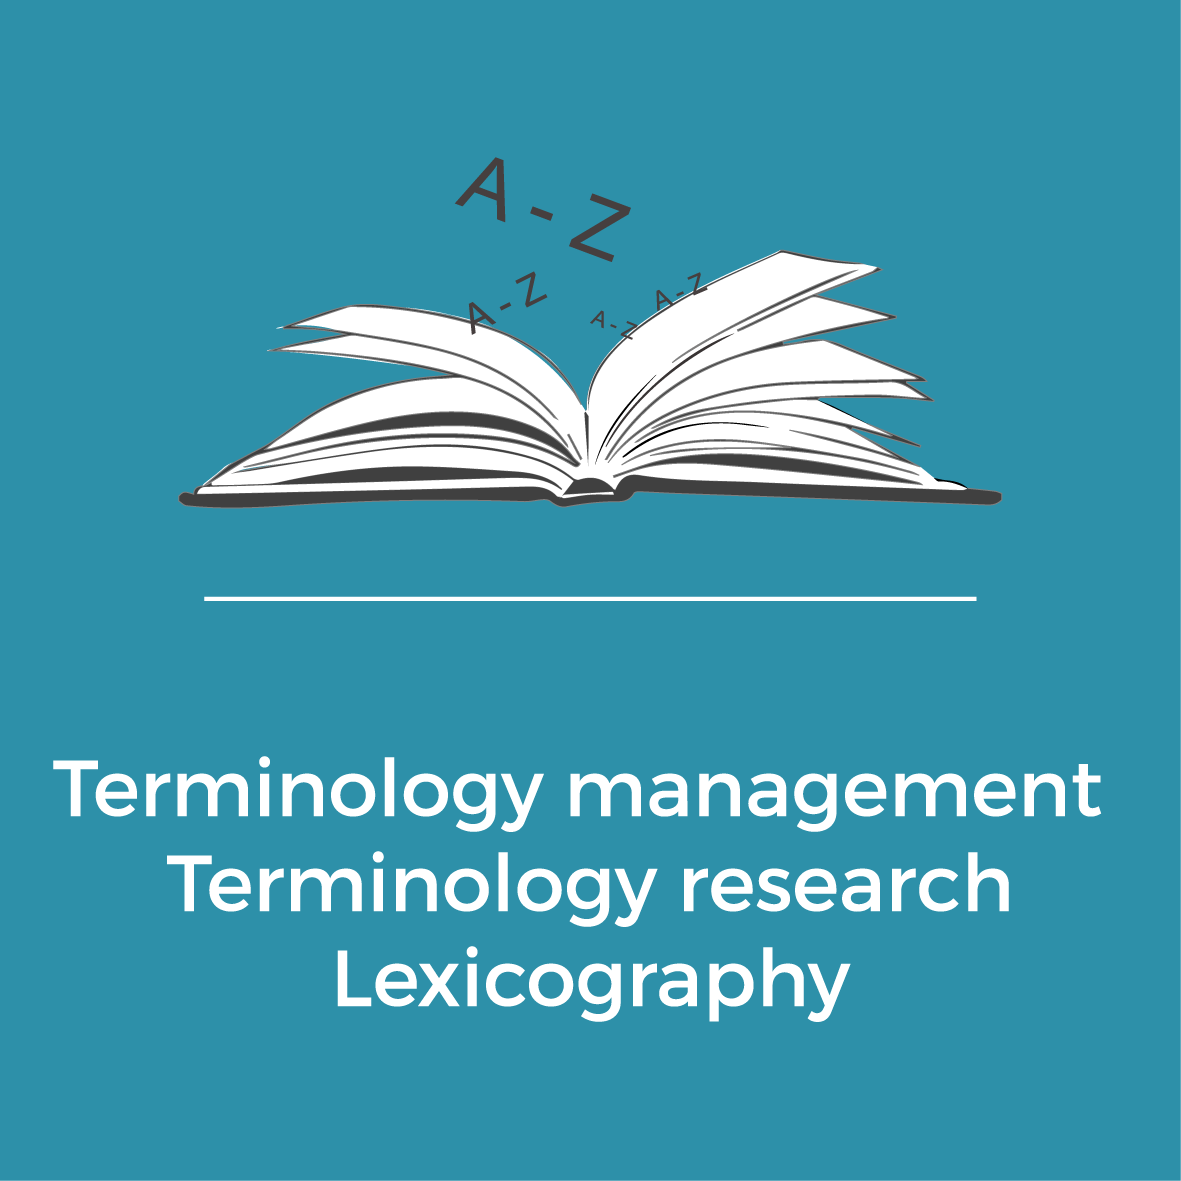 Services - Terminology management - Terminology research - Lexicography